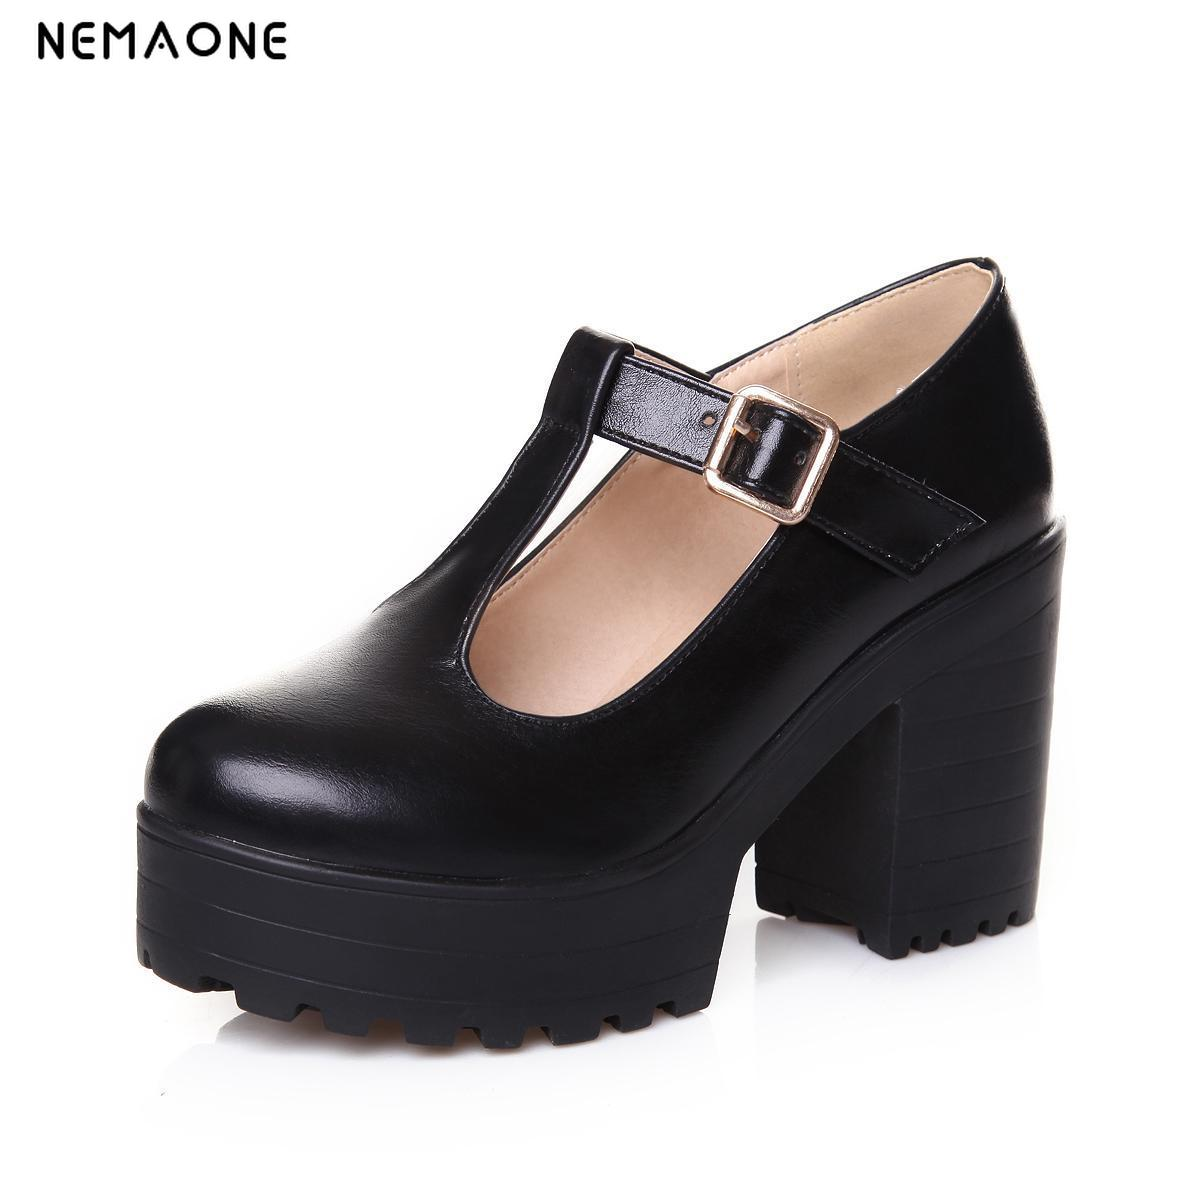 NEMAONE New fashion women shoes thick high heels platform shoes woman shoes spring autumn women pumps T-strap ladies shoes ryvba woman thin high heels pumps womens fashion gold black bling platform shoes women spring autumn women s work female pumps